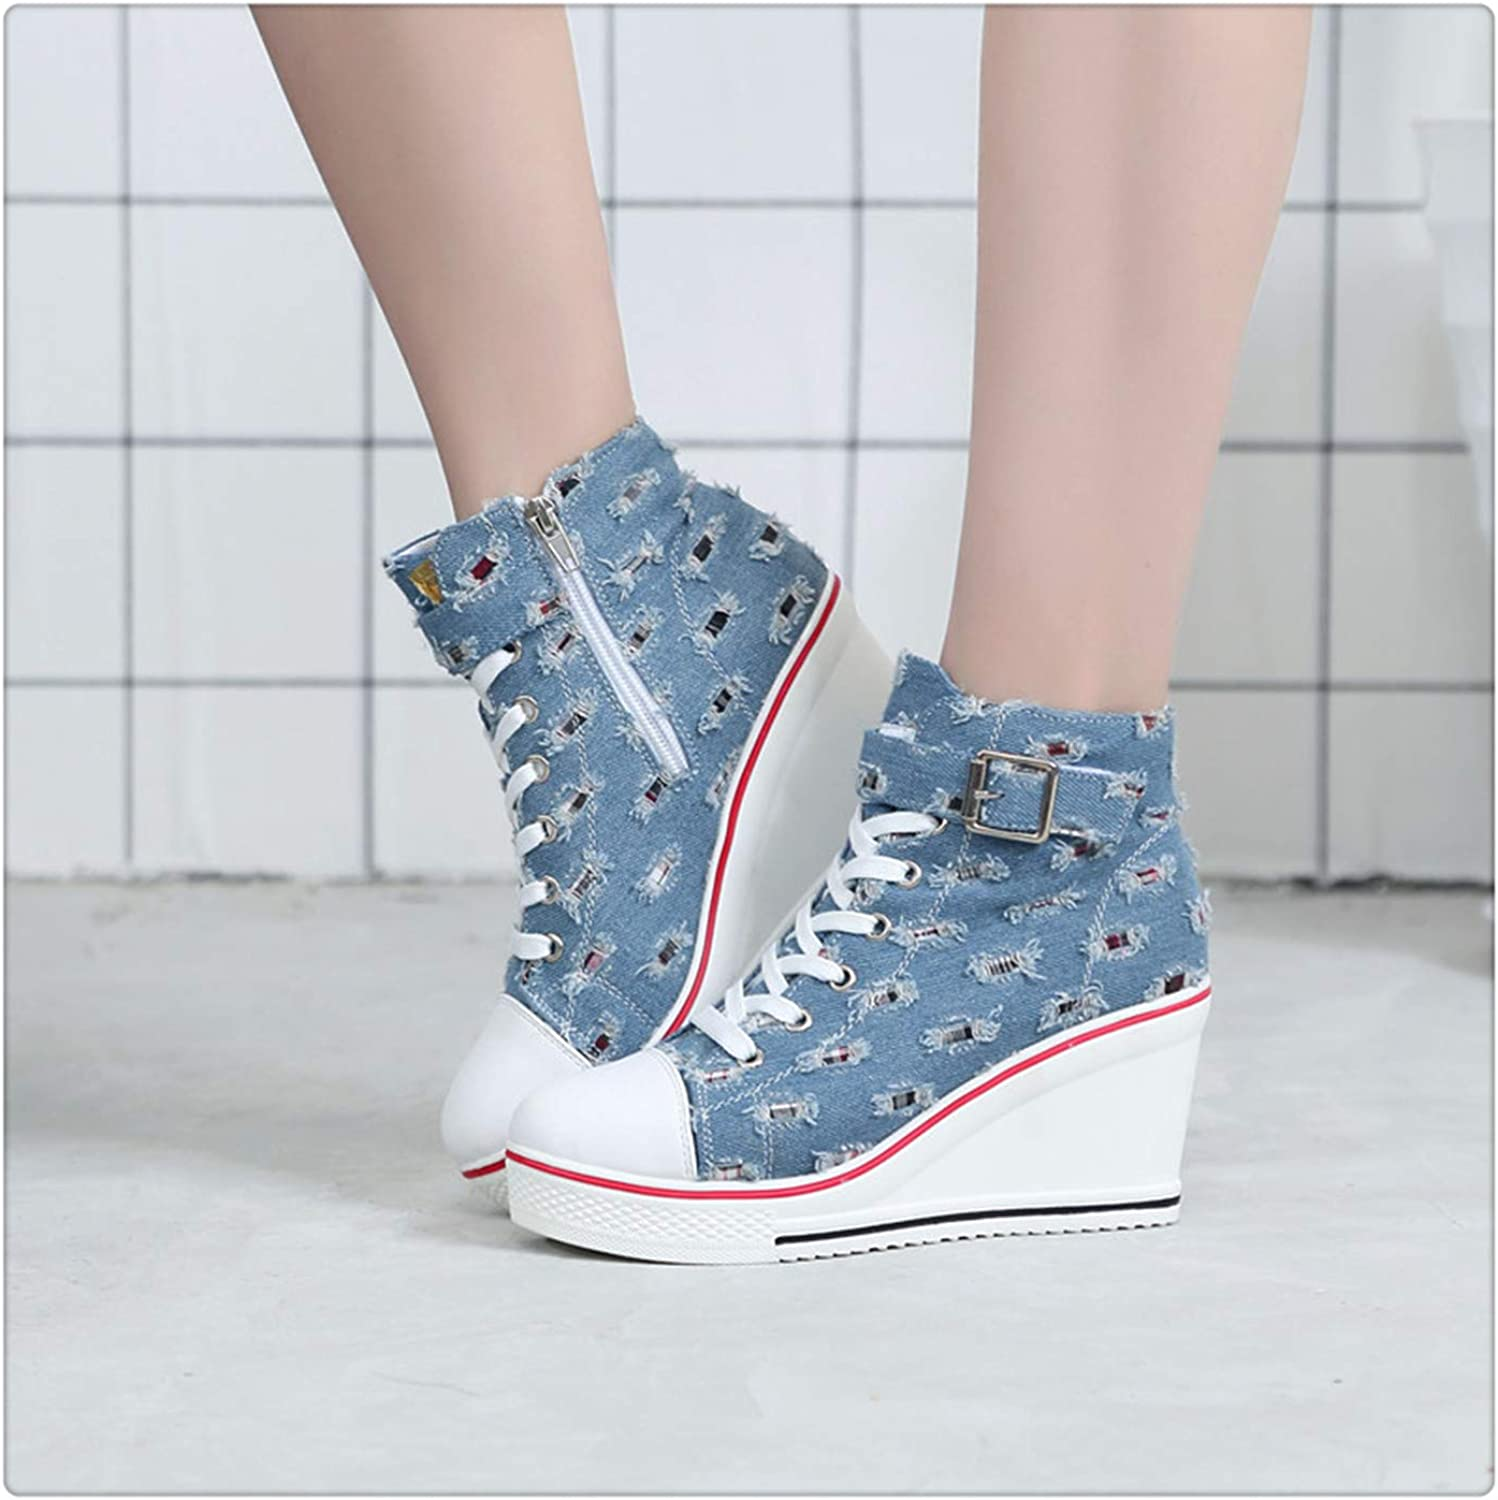 NNHLPO& Platform shoes Women Canvas shoes Casual Denim Trainers High Heel for Walking